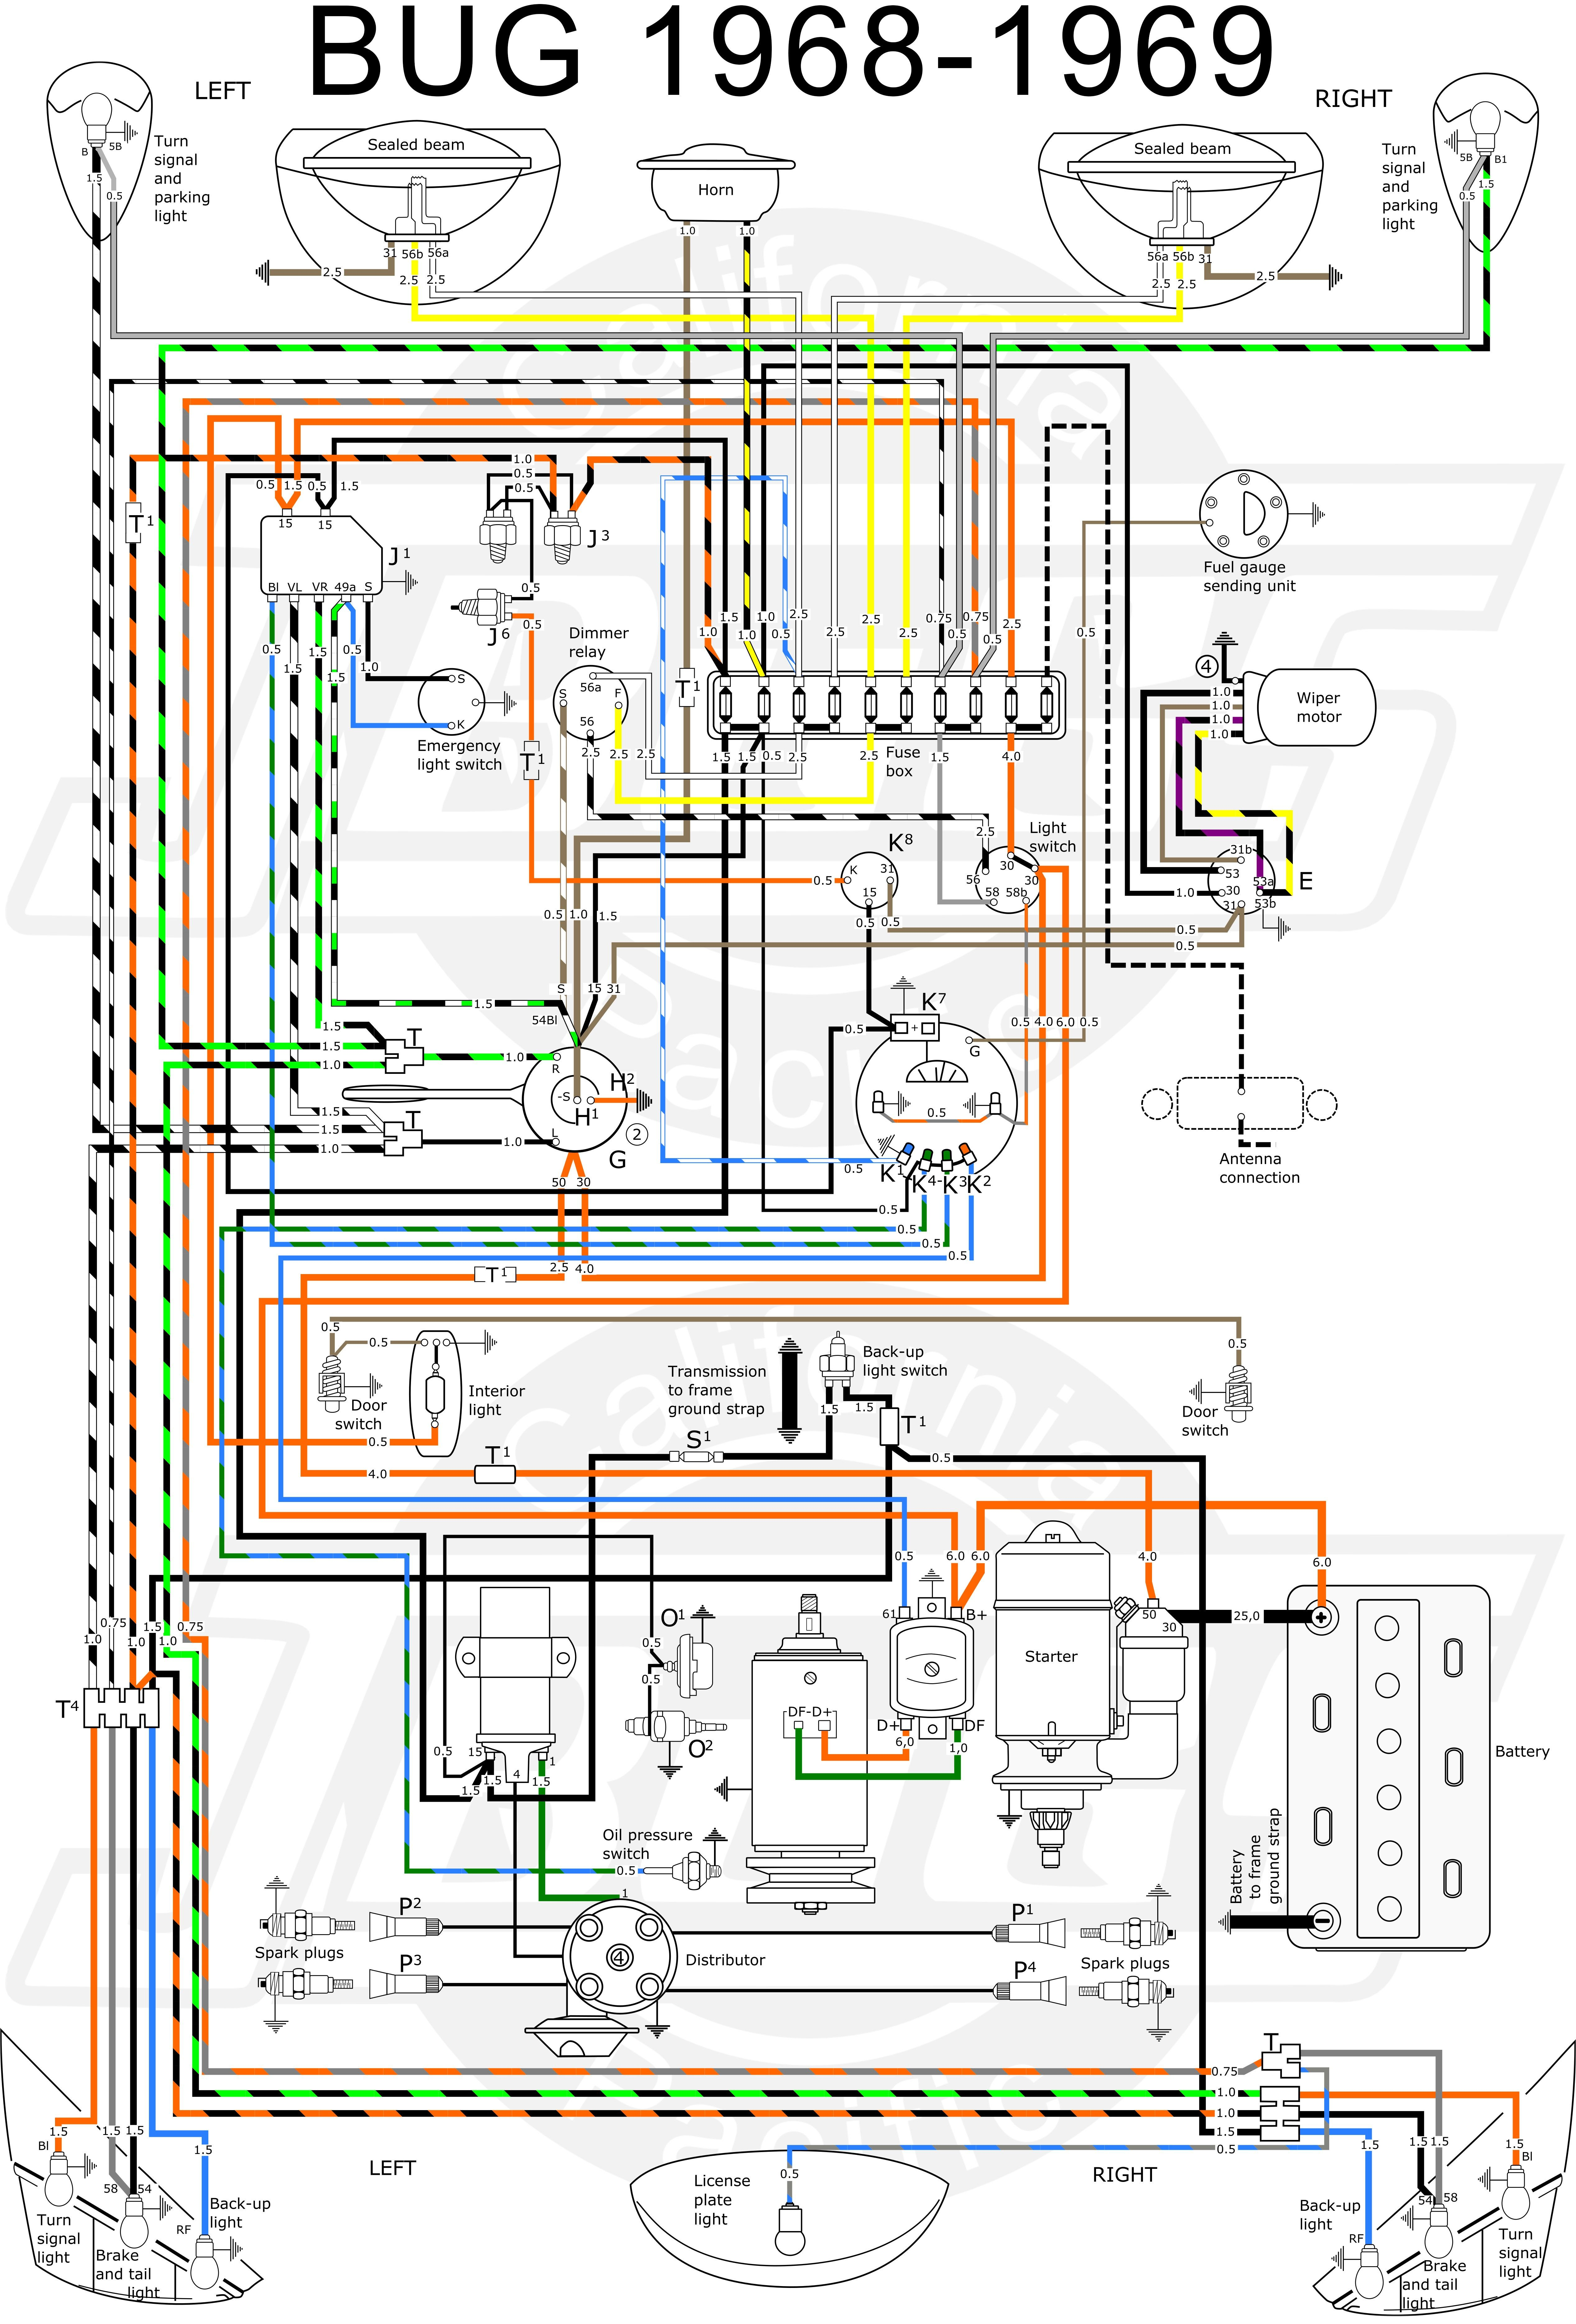 Vw Beetle Ignition Switch Wiring Diagram